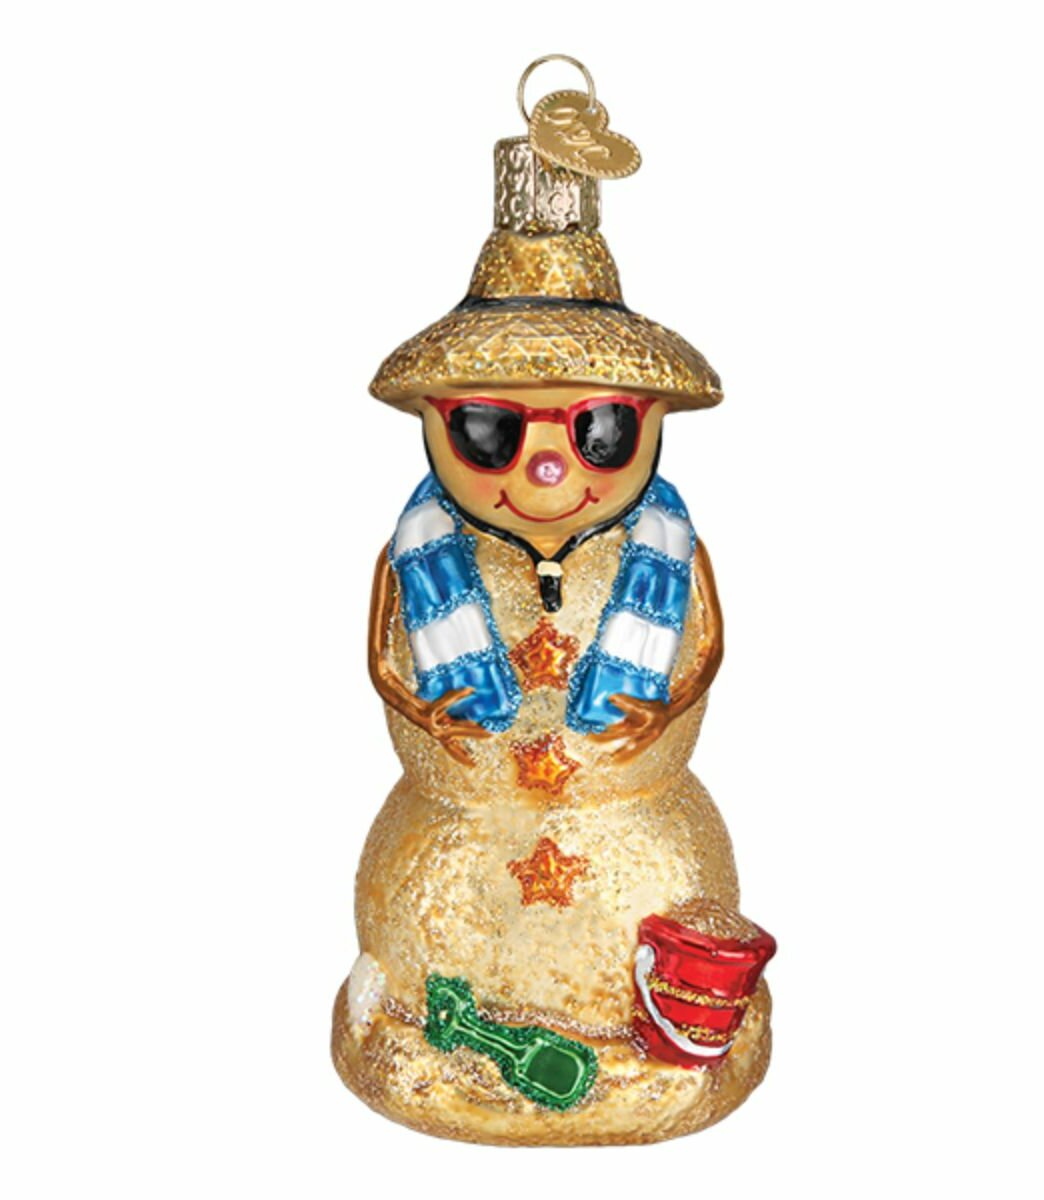 Old World Christmas Sand Snowman Hanging Figurine Ornament Wayfair